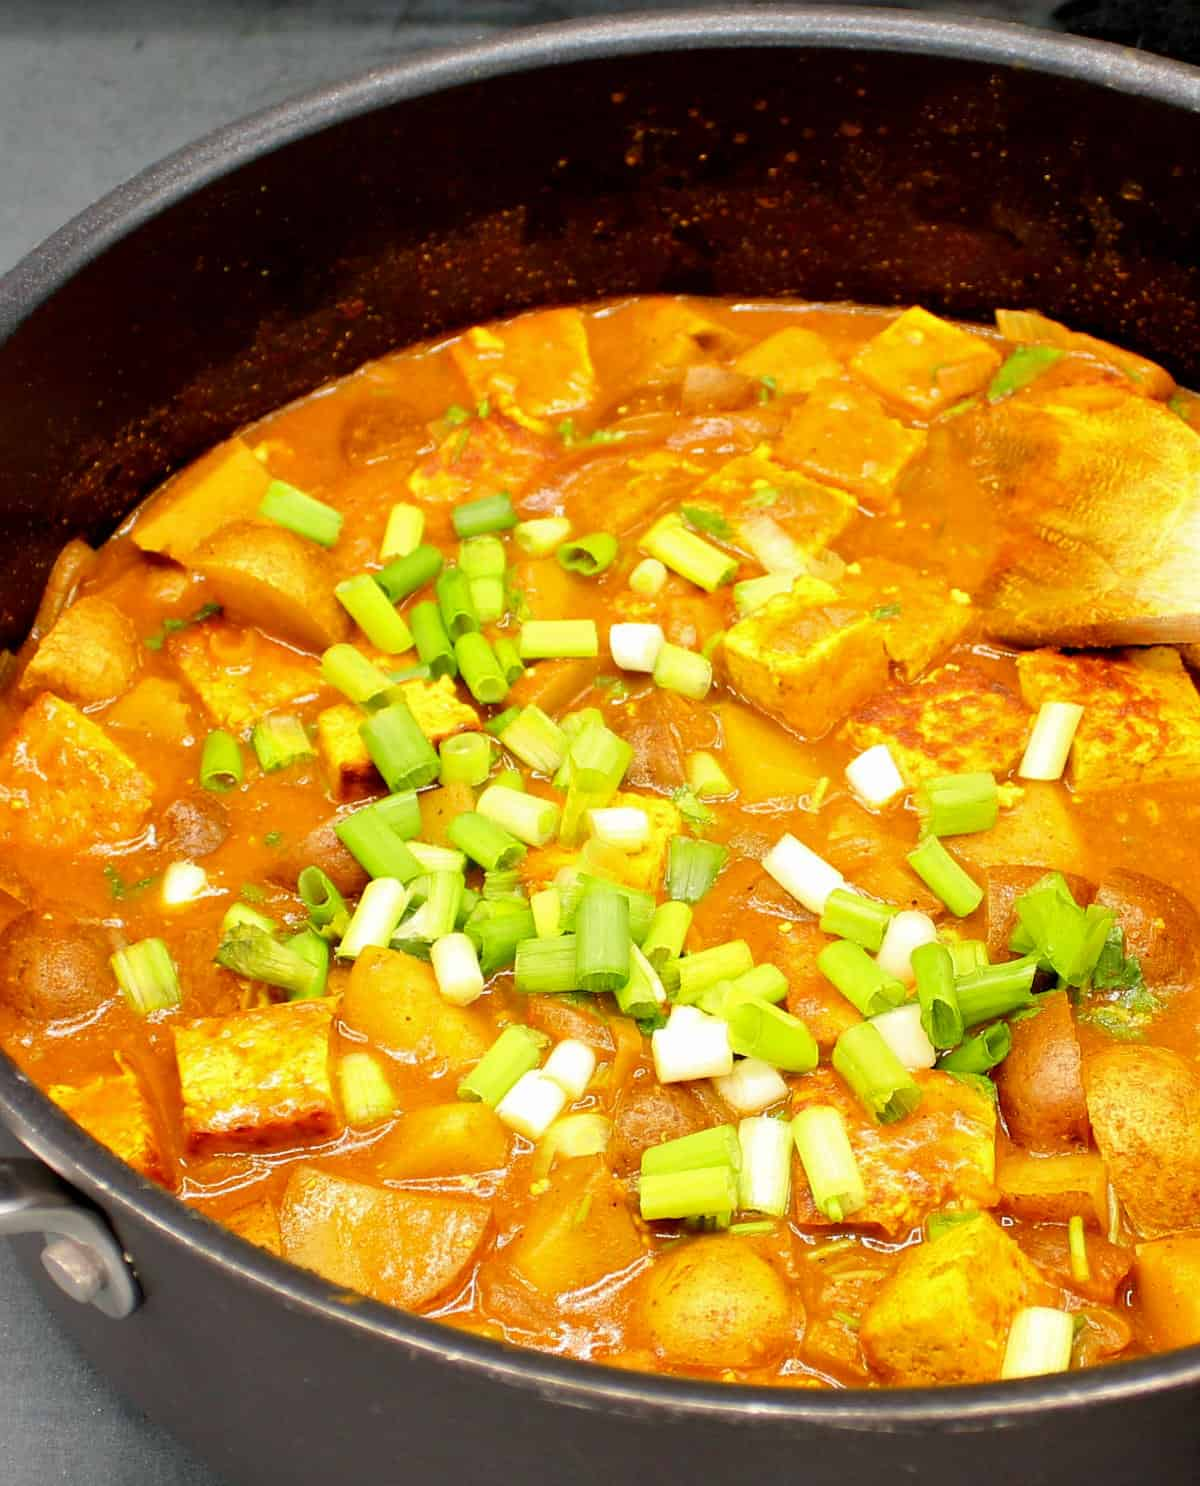 Vegan Jamaican Curry with pan fried tofu and potatoes and scallions in a skillet.